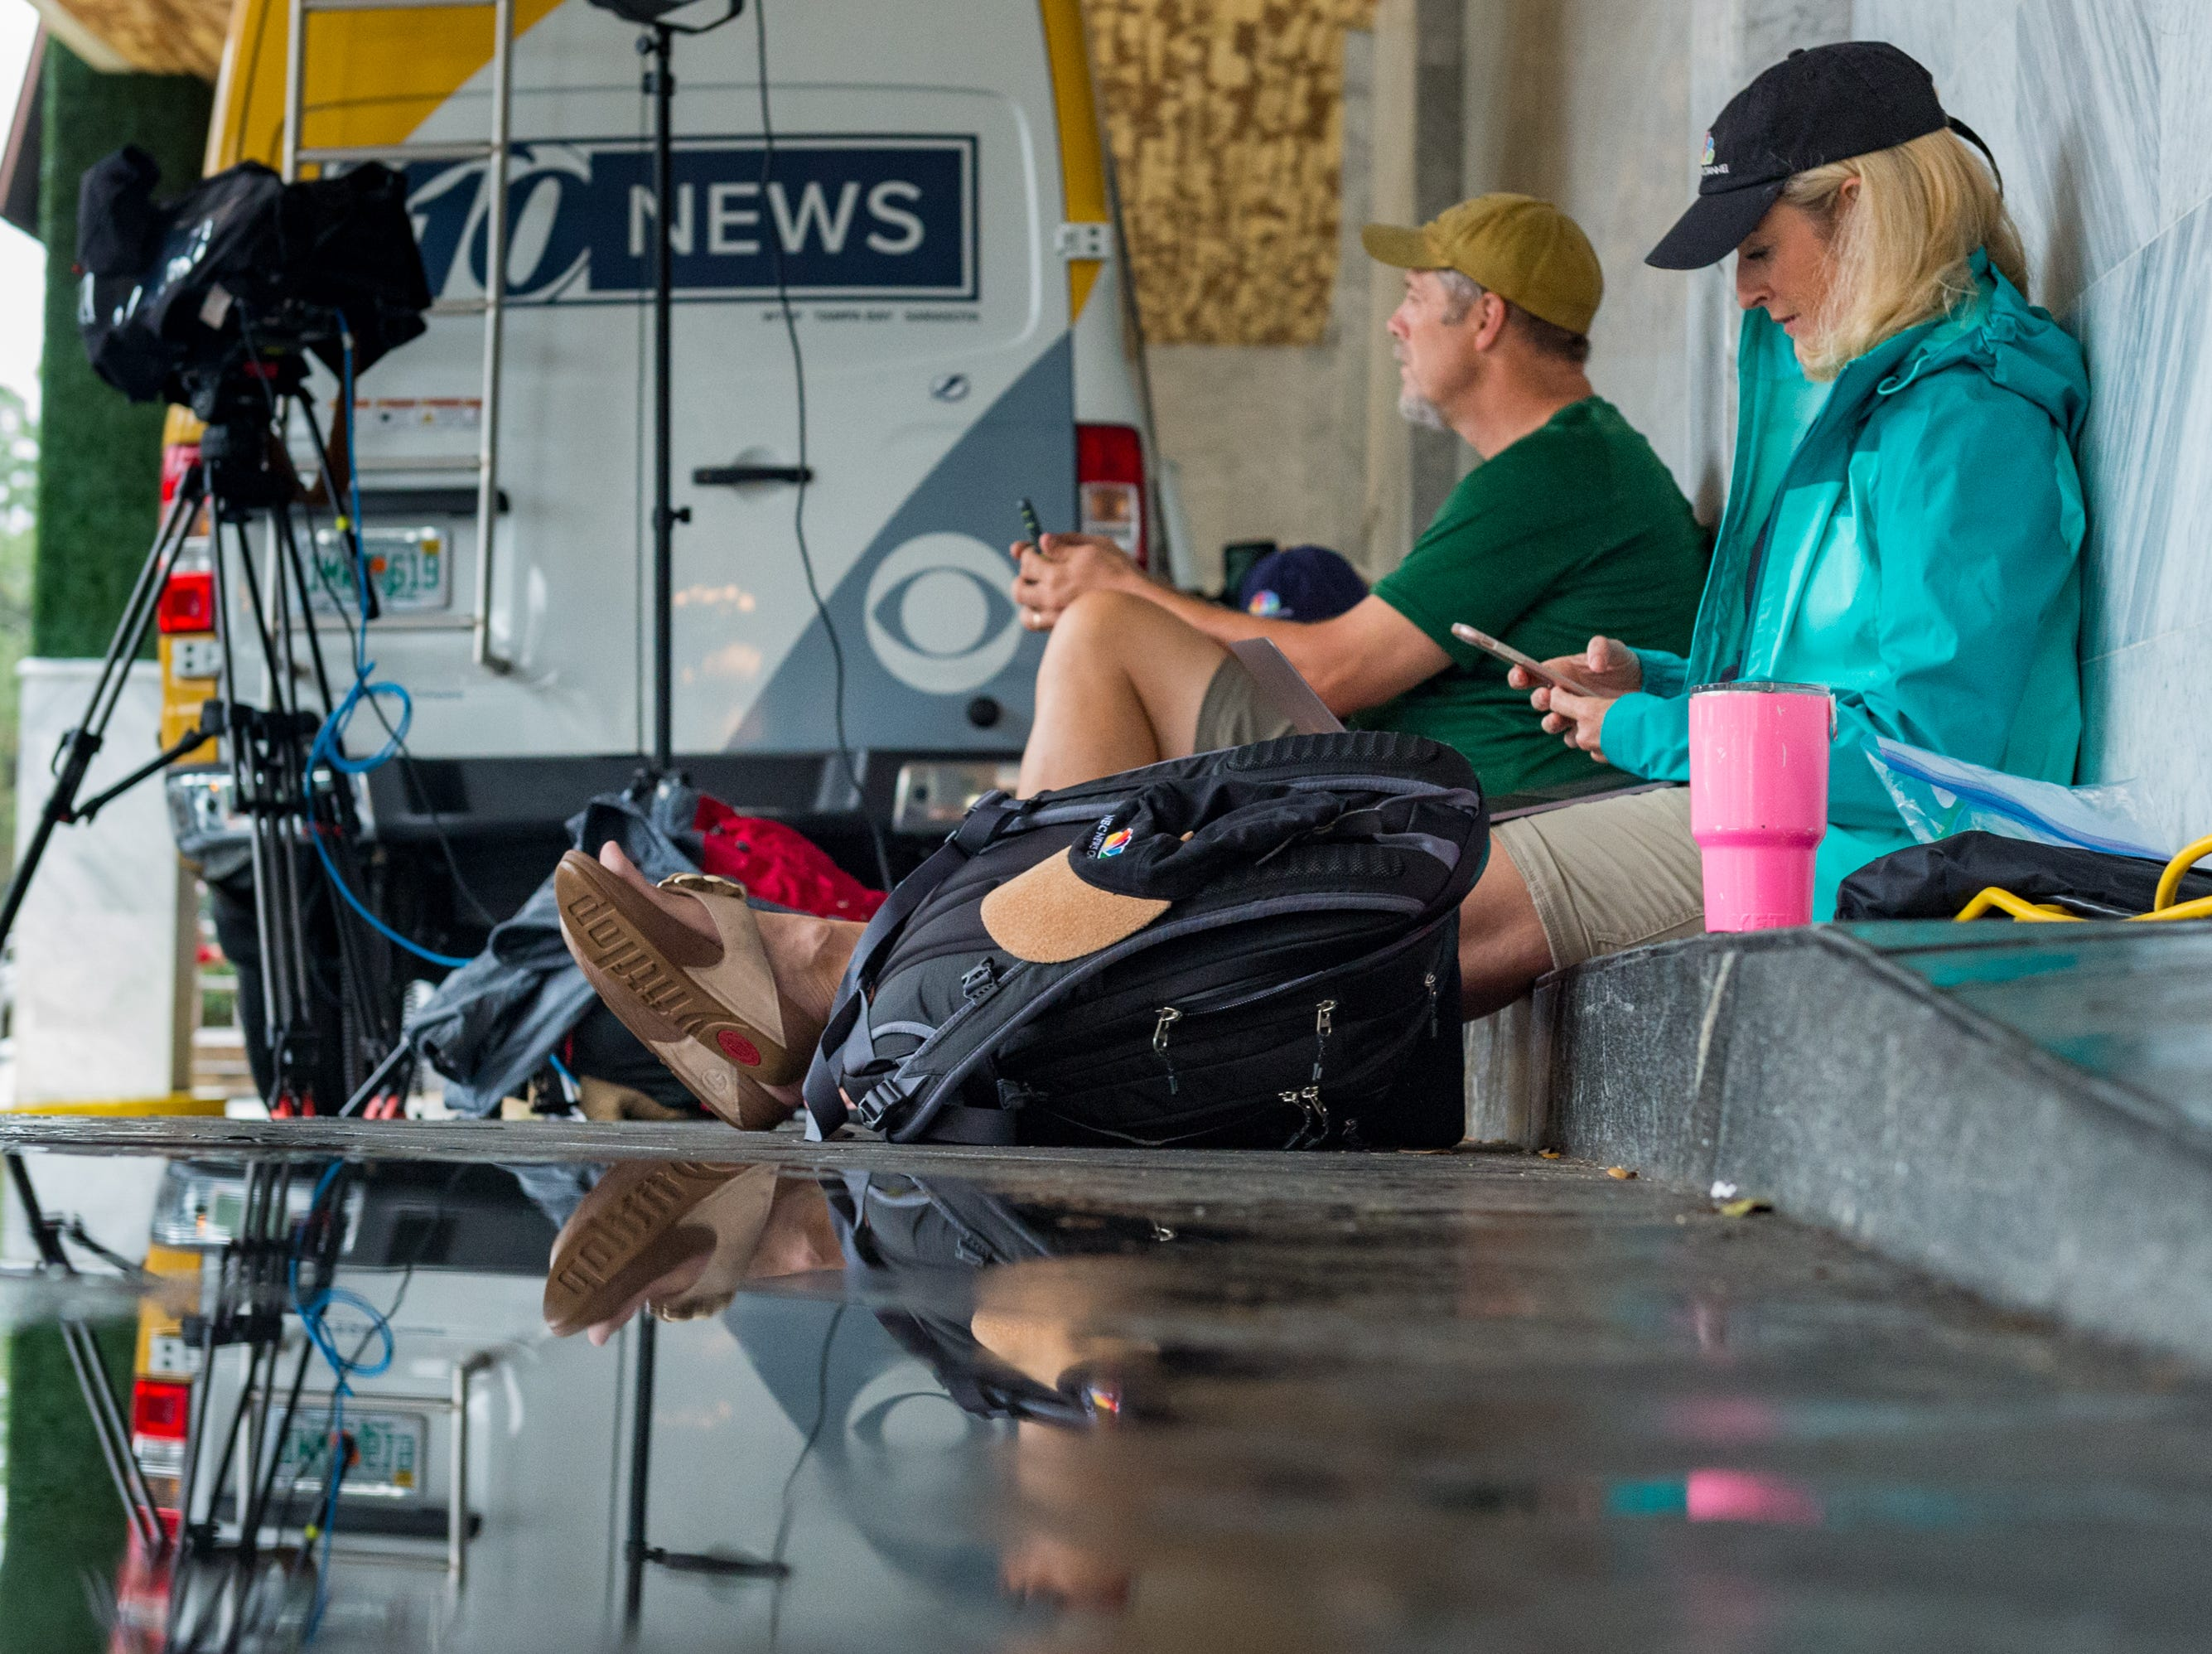 News crews in Tallahassee reporting on the status of the storm and await the arrival of Hurricane Michael in Tallahassee, FL. Wednesday, Oct. 10, 2018.